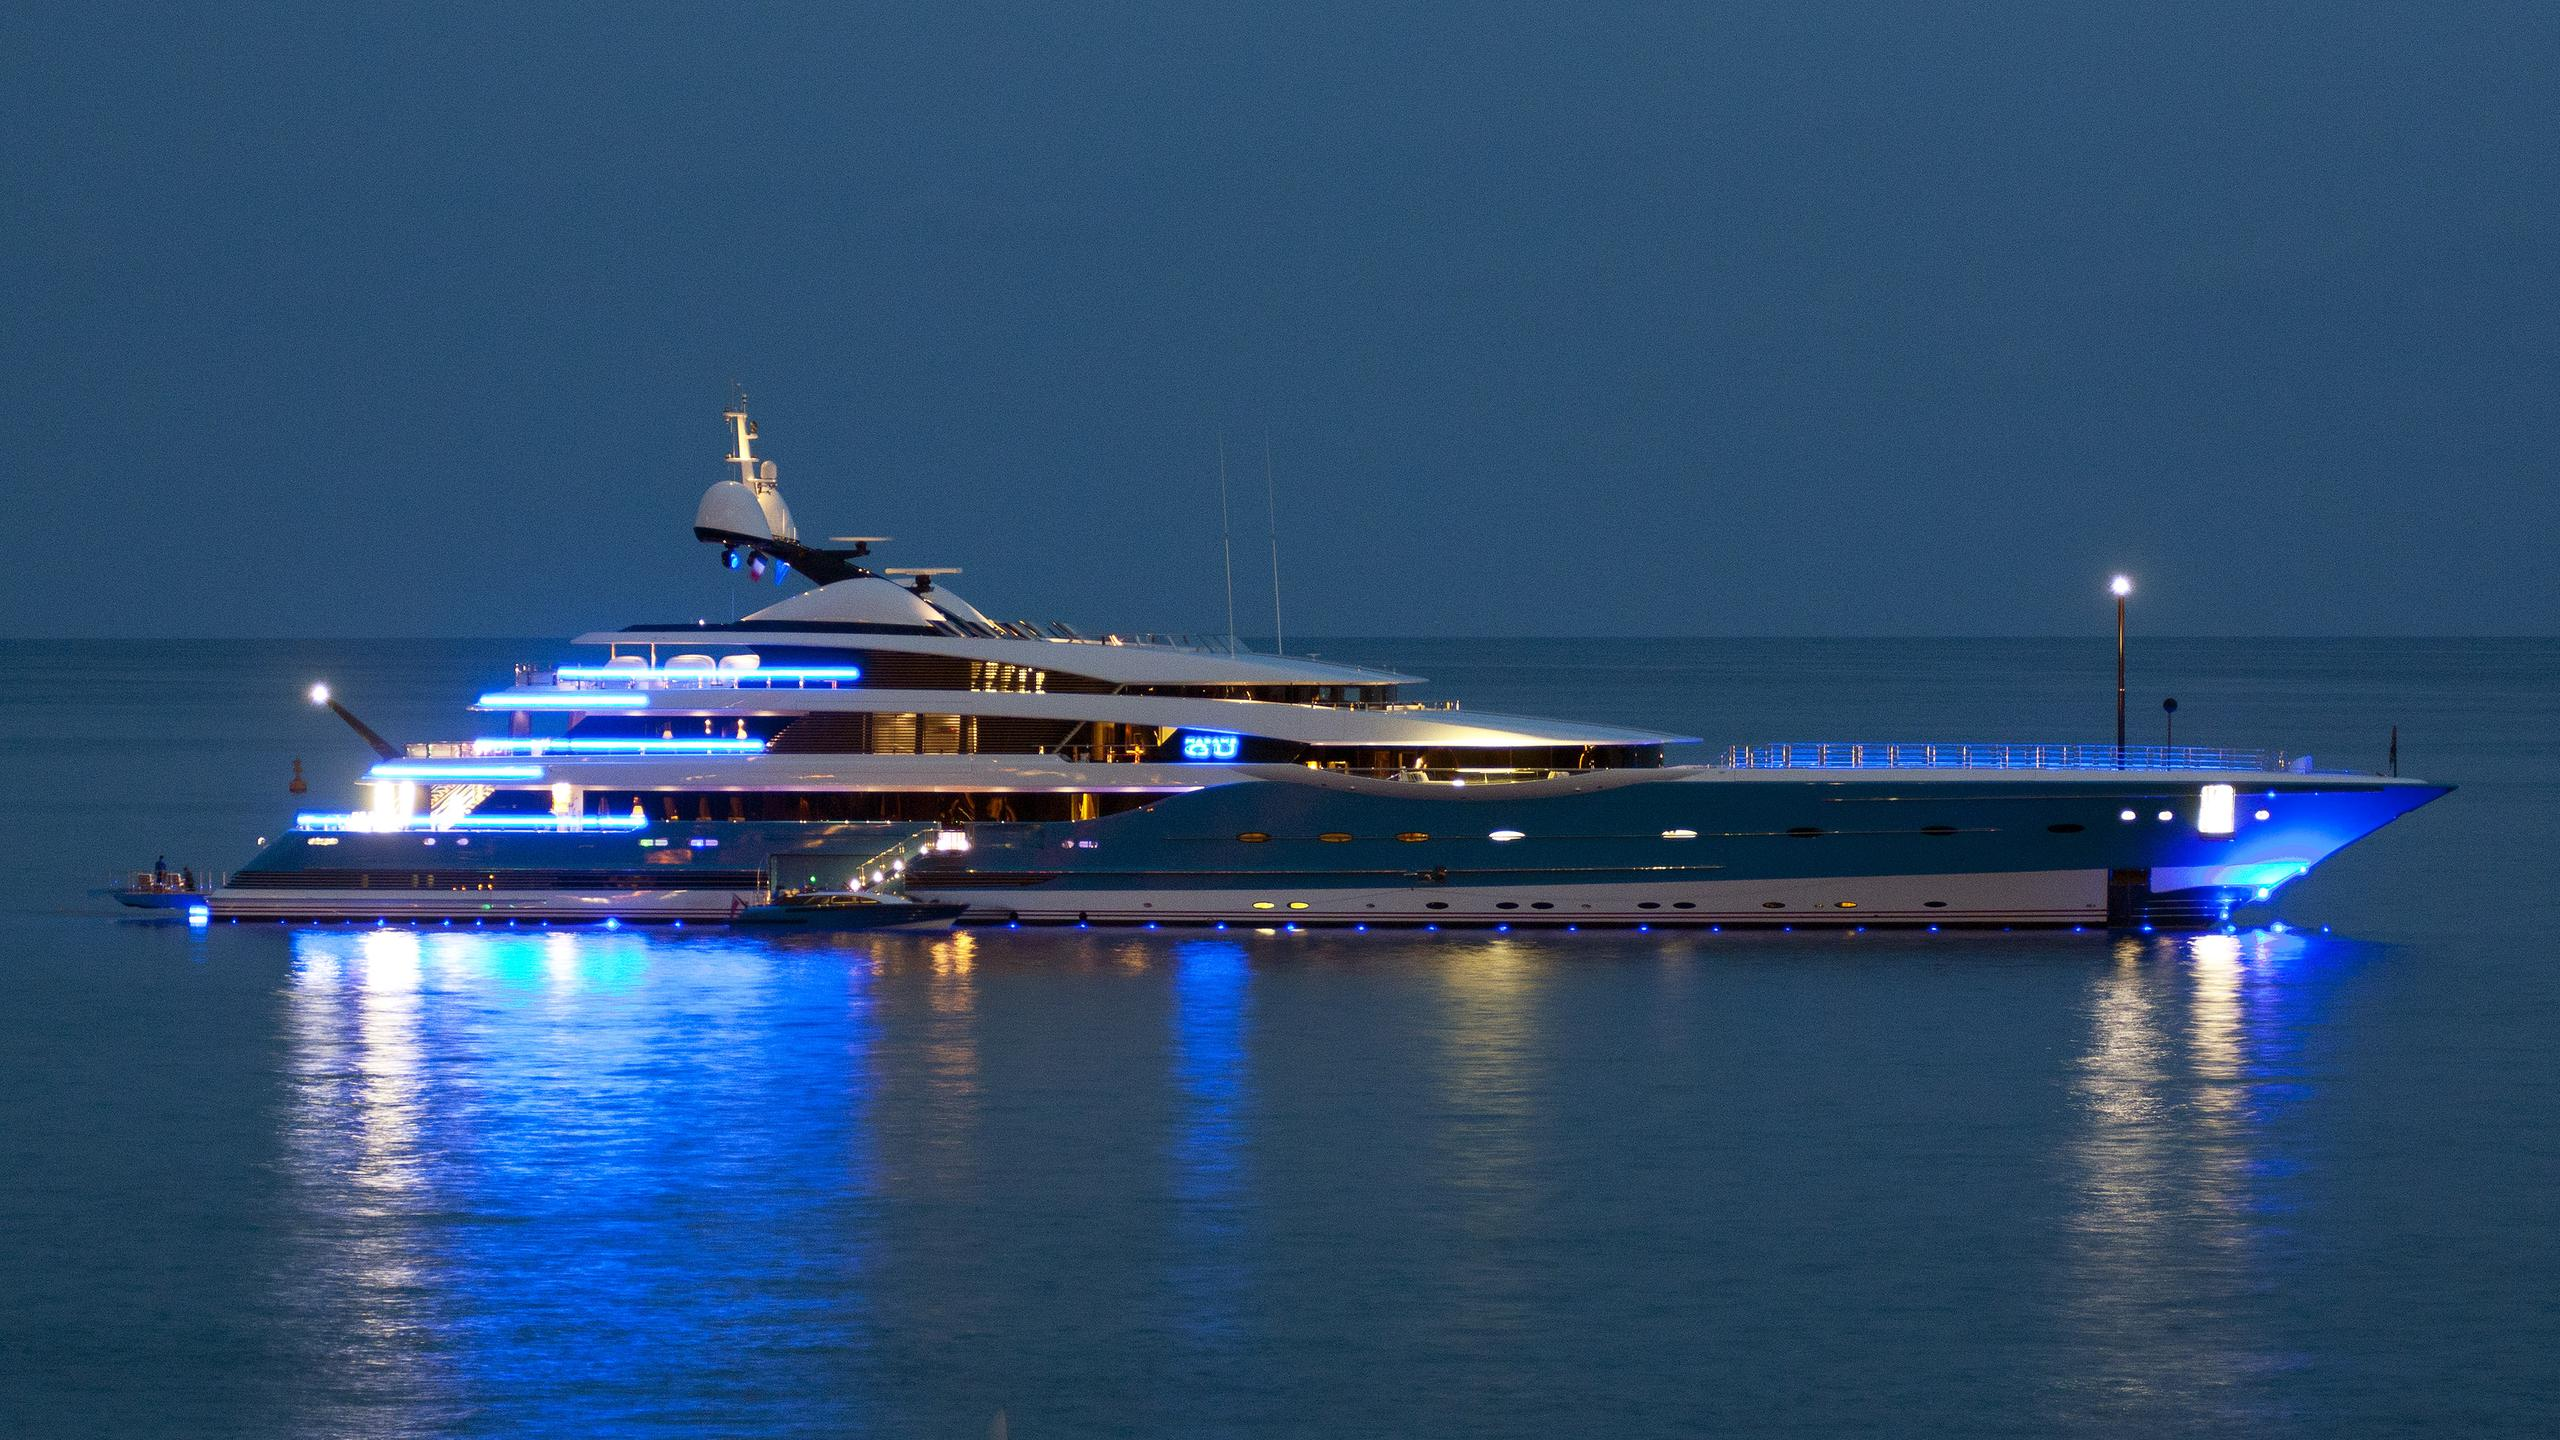 madame-gu-motor-yacht-feadship-2013-99m-profile-by-night